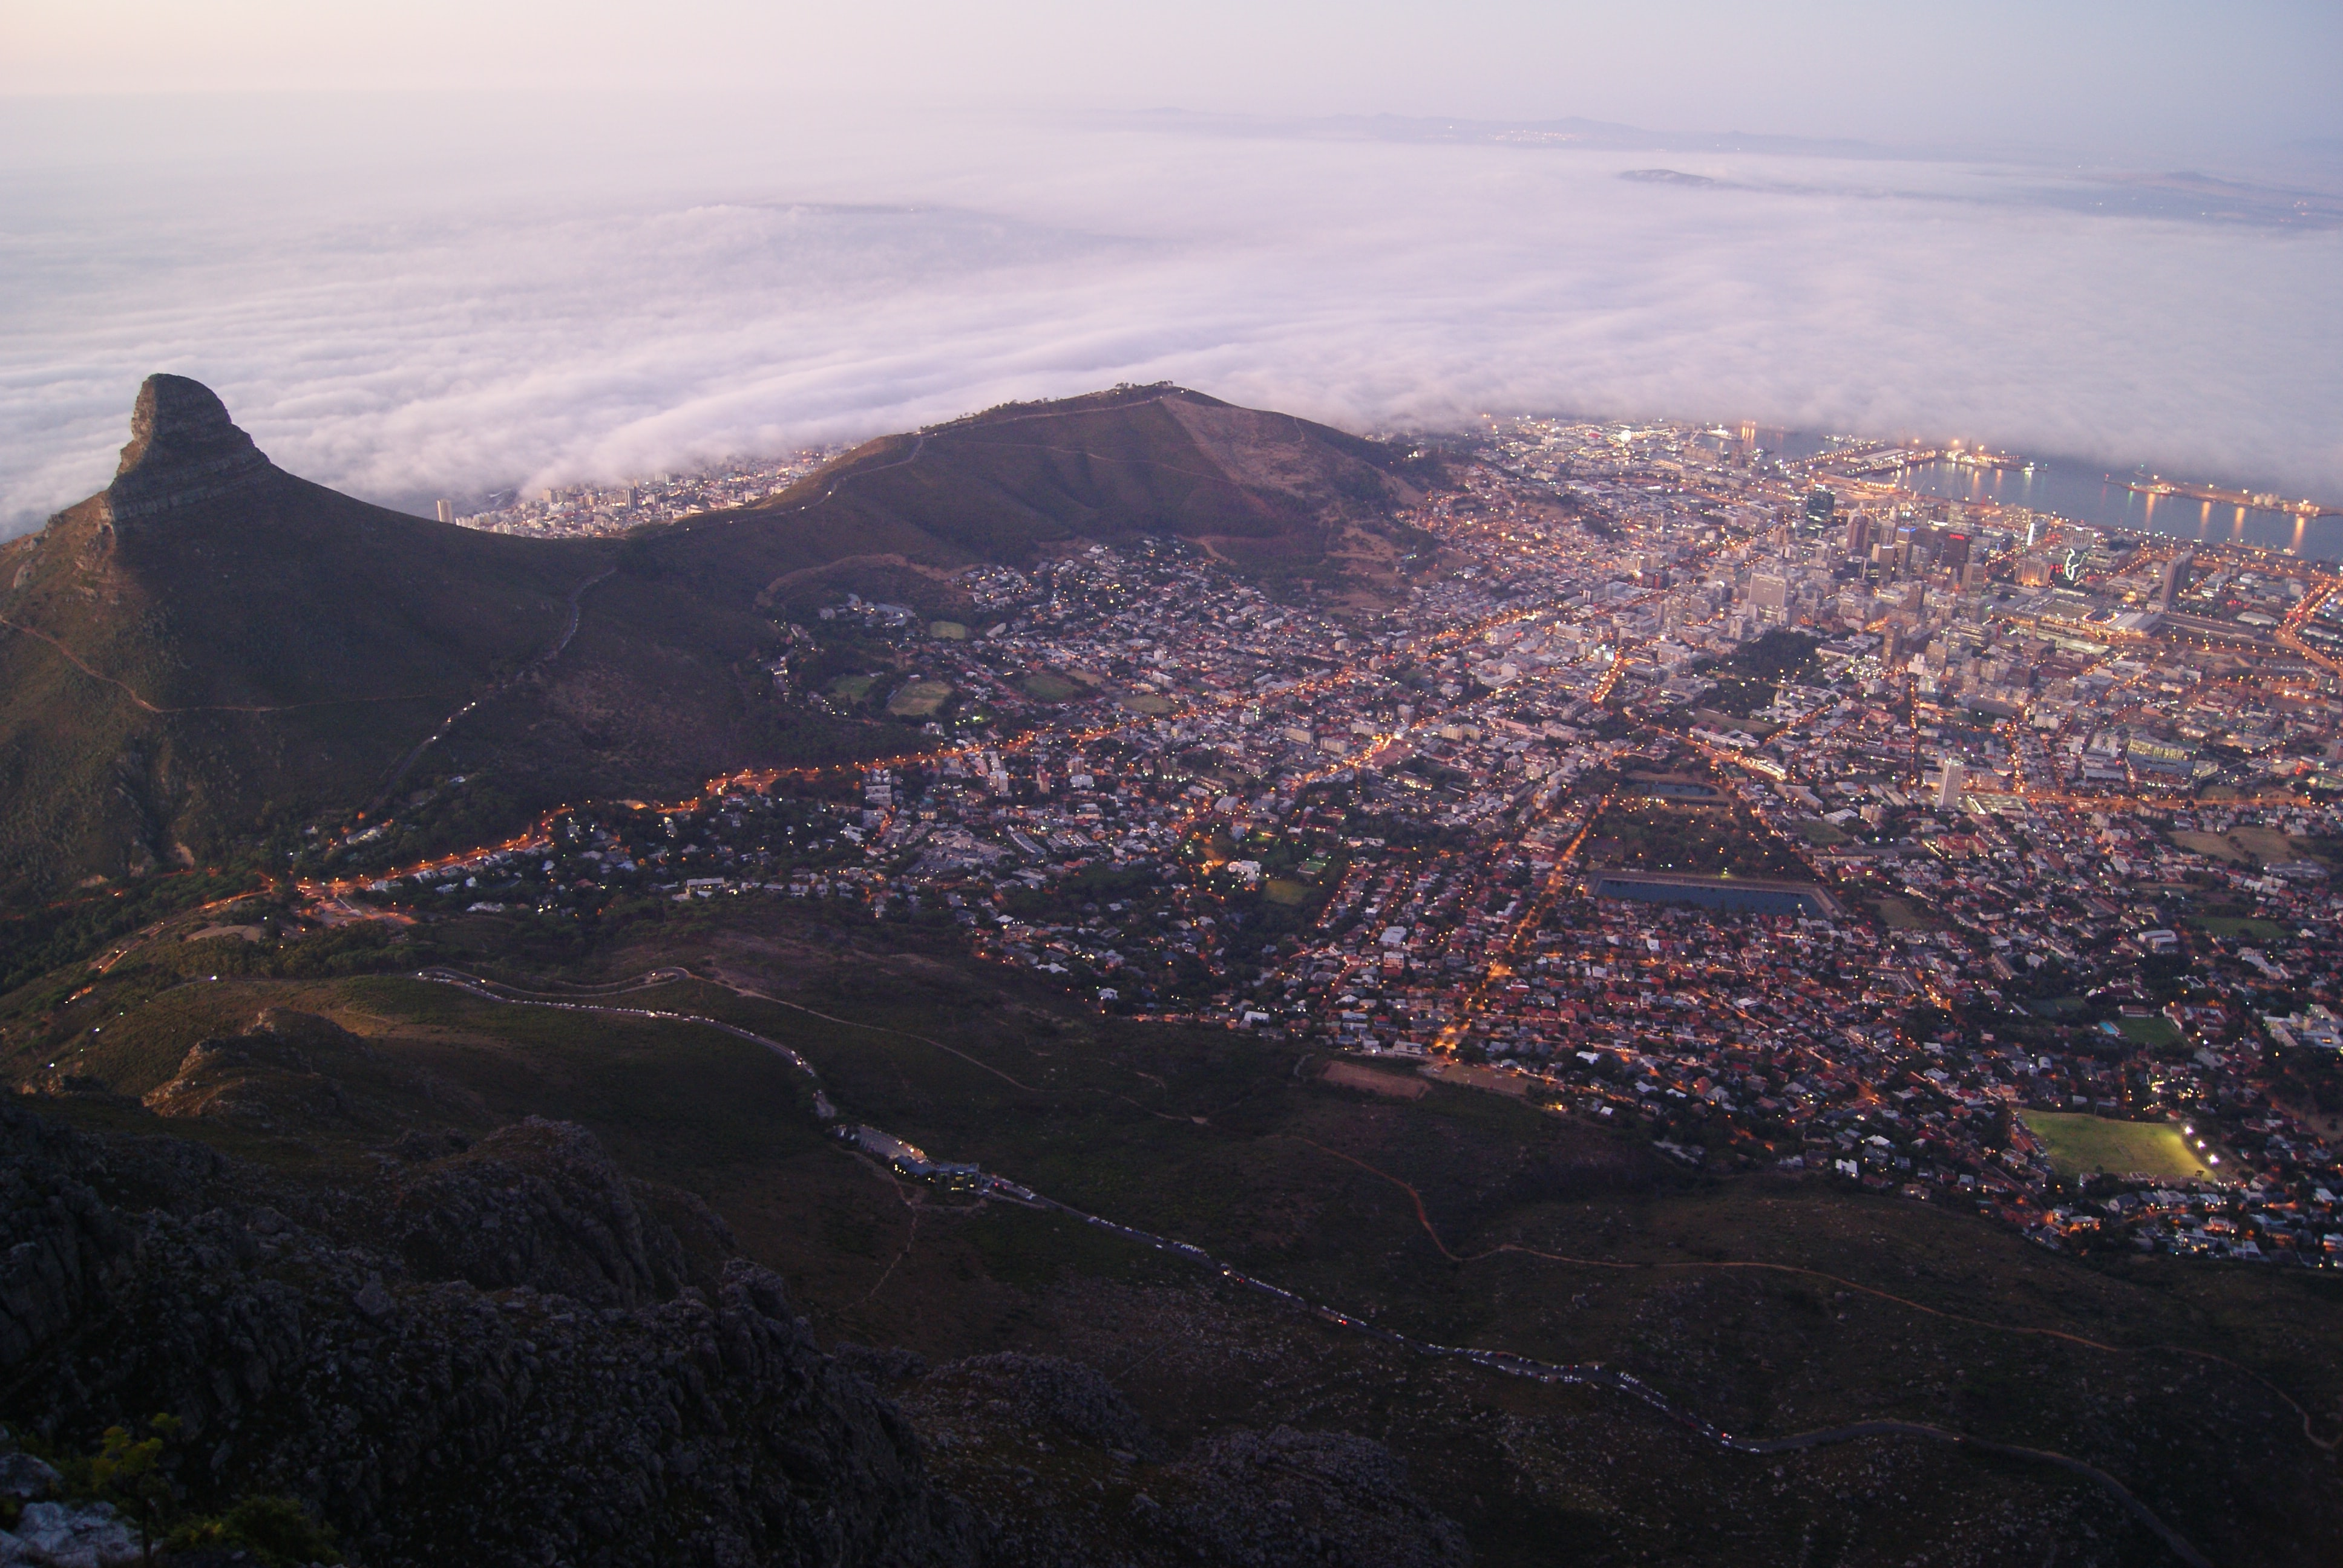 aerial view of houses and mountains